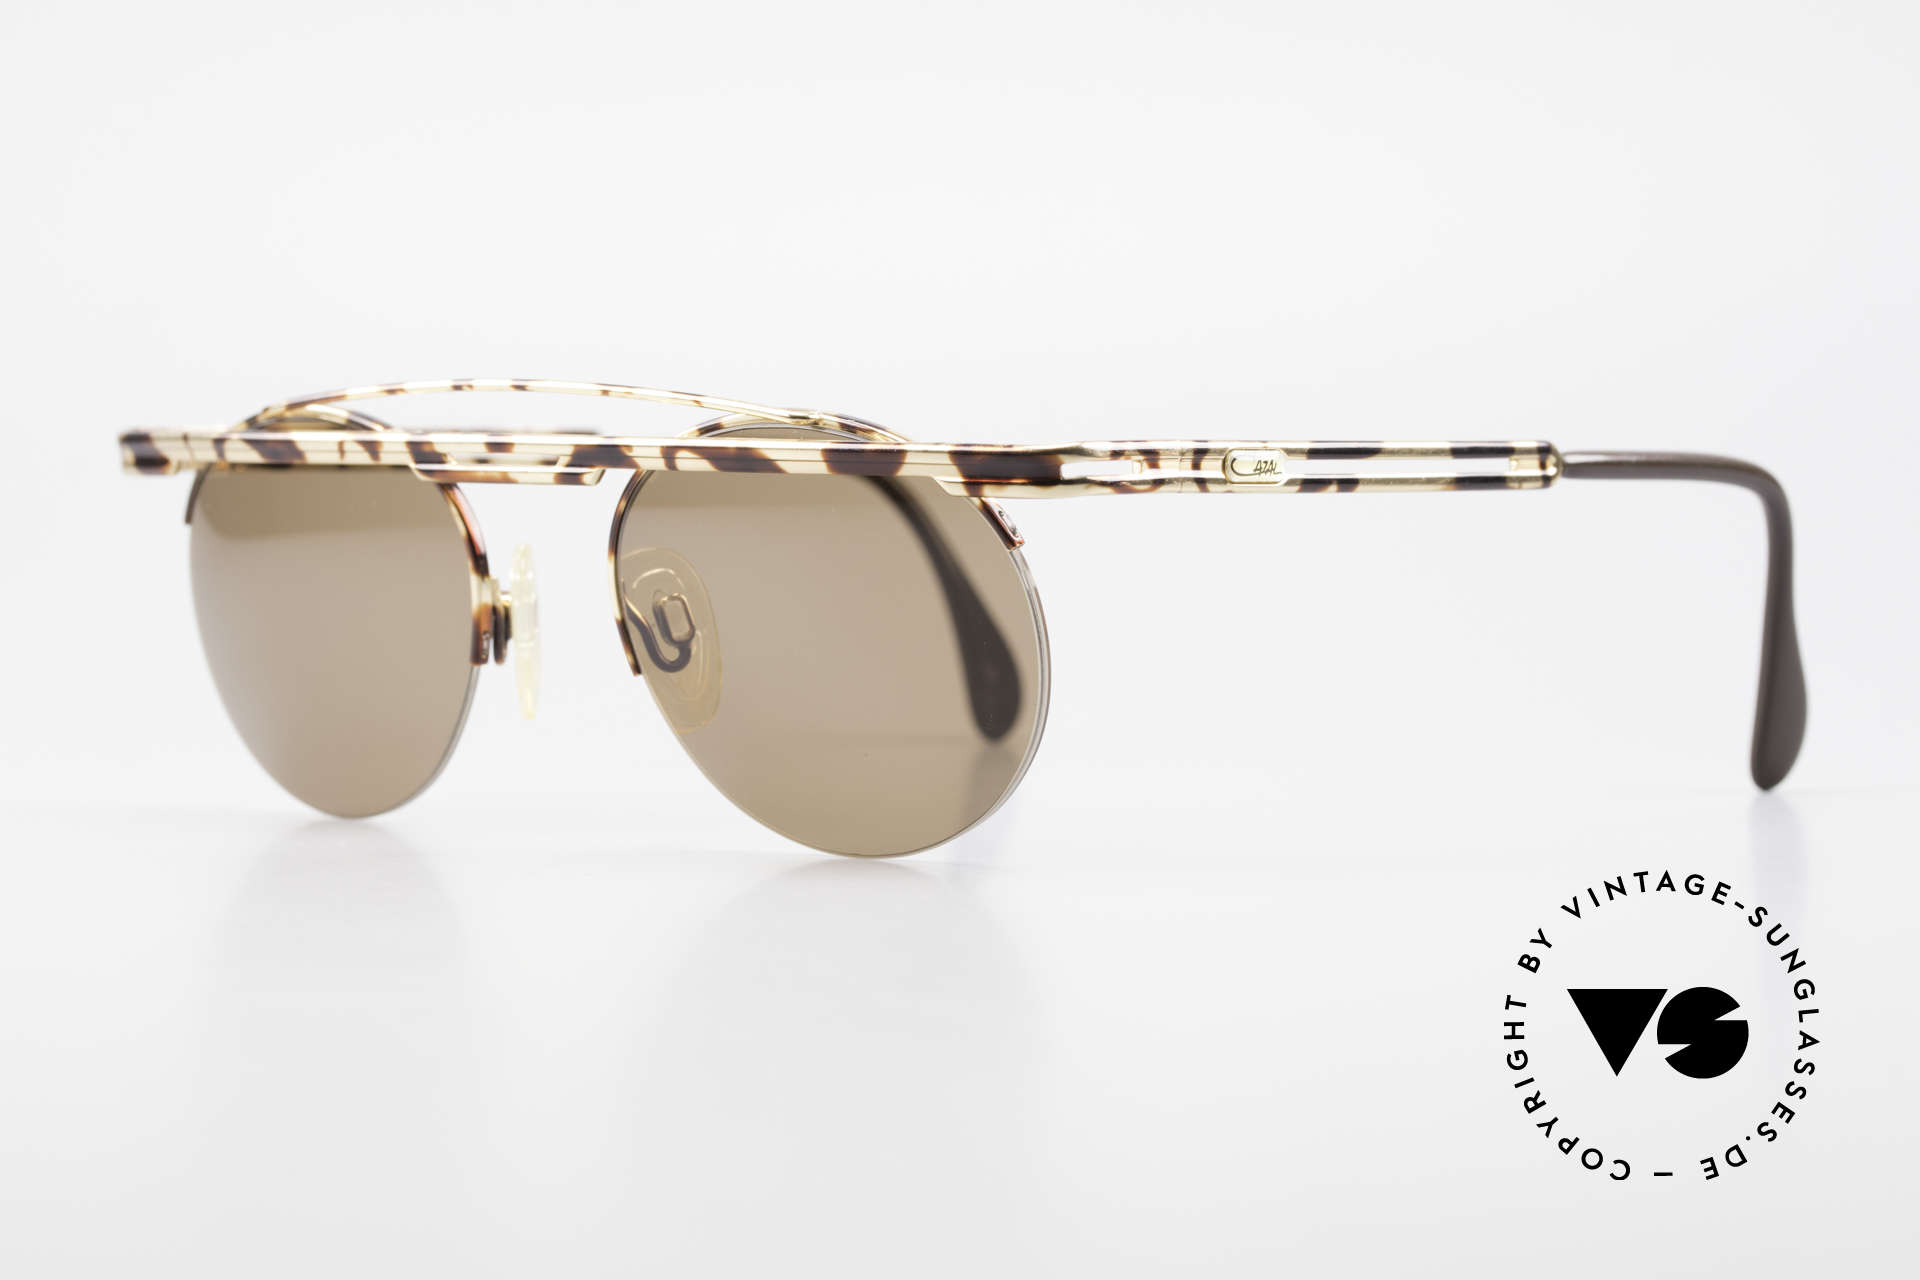 Cazal 748 Rare Vintage No Retro Shades, costly varnishing (characteristical for all vintage Cazals), Made for Men and Women